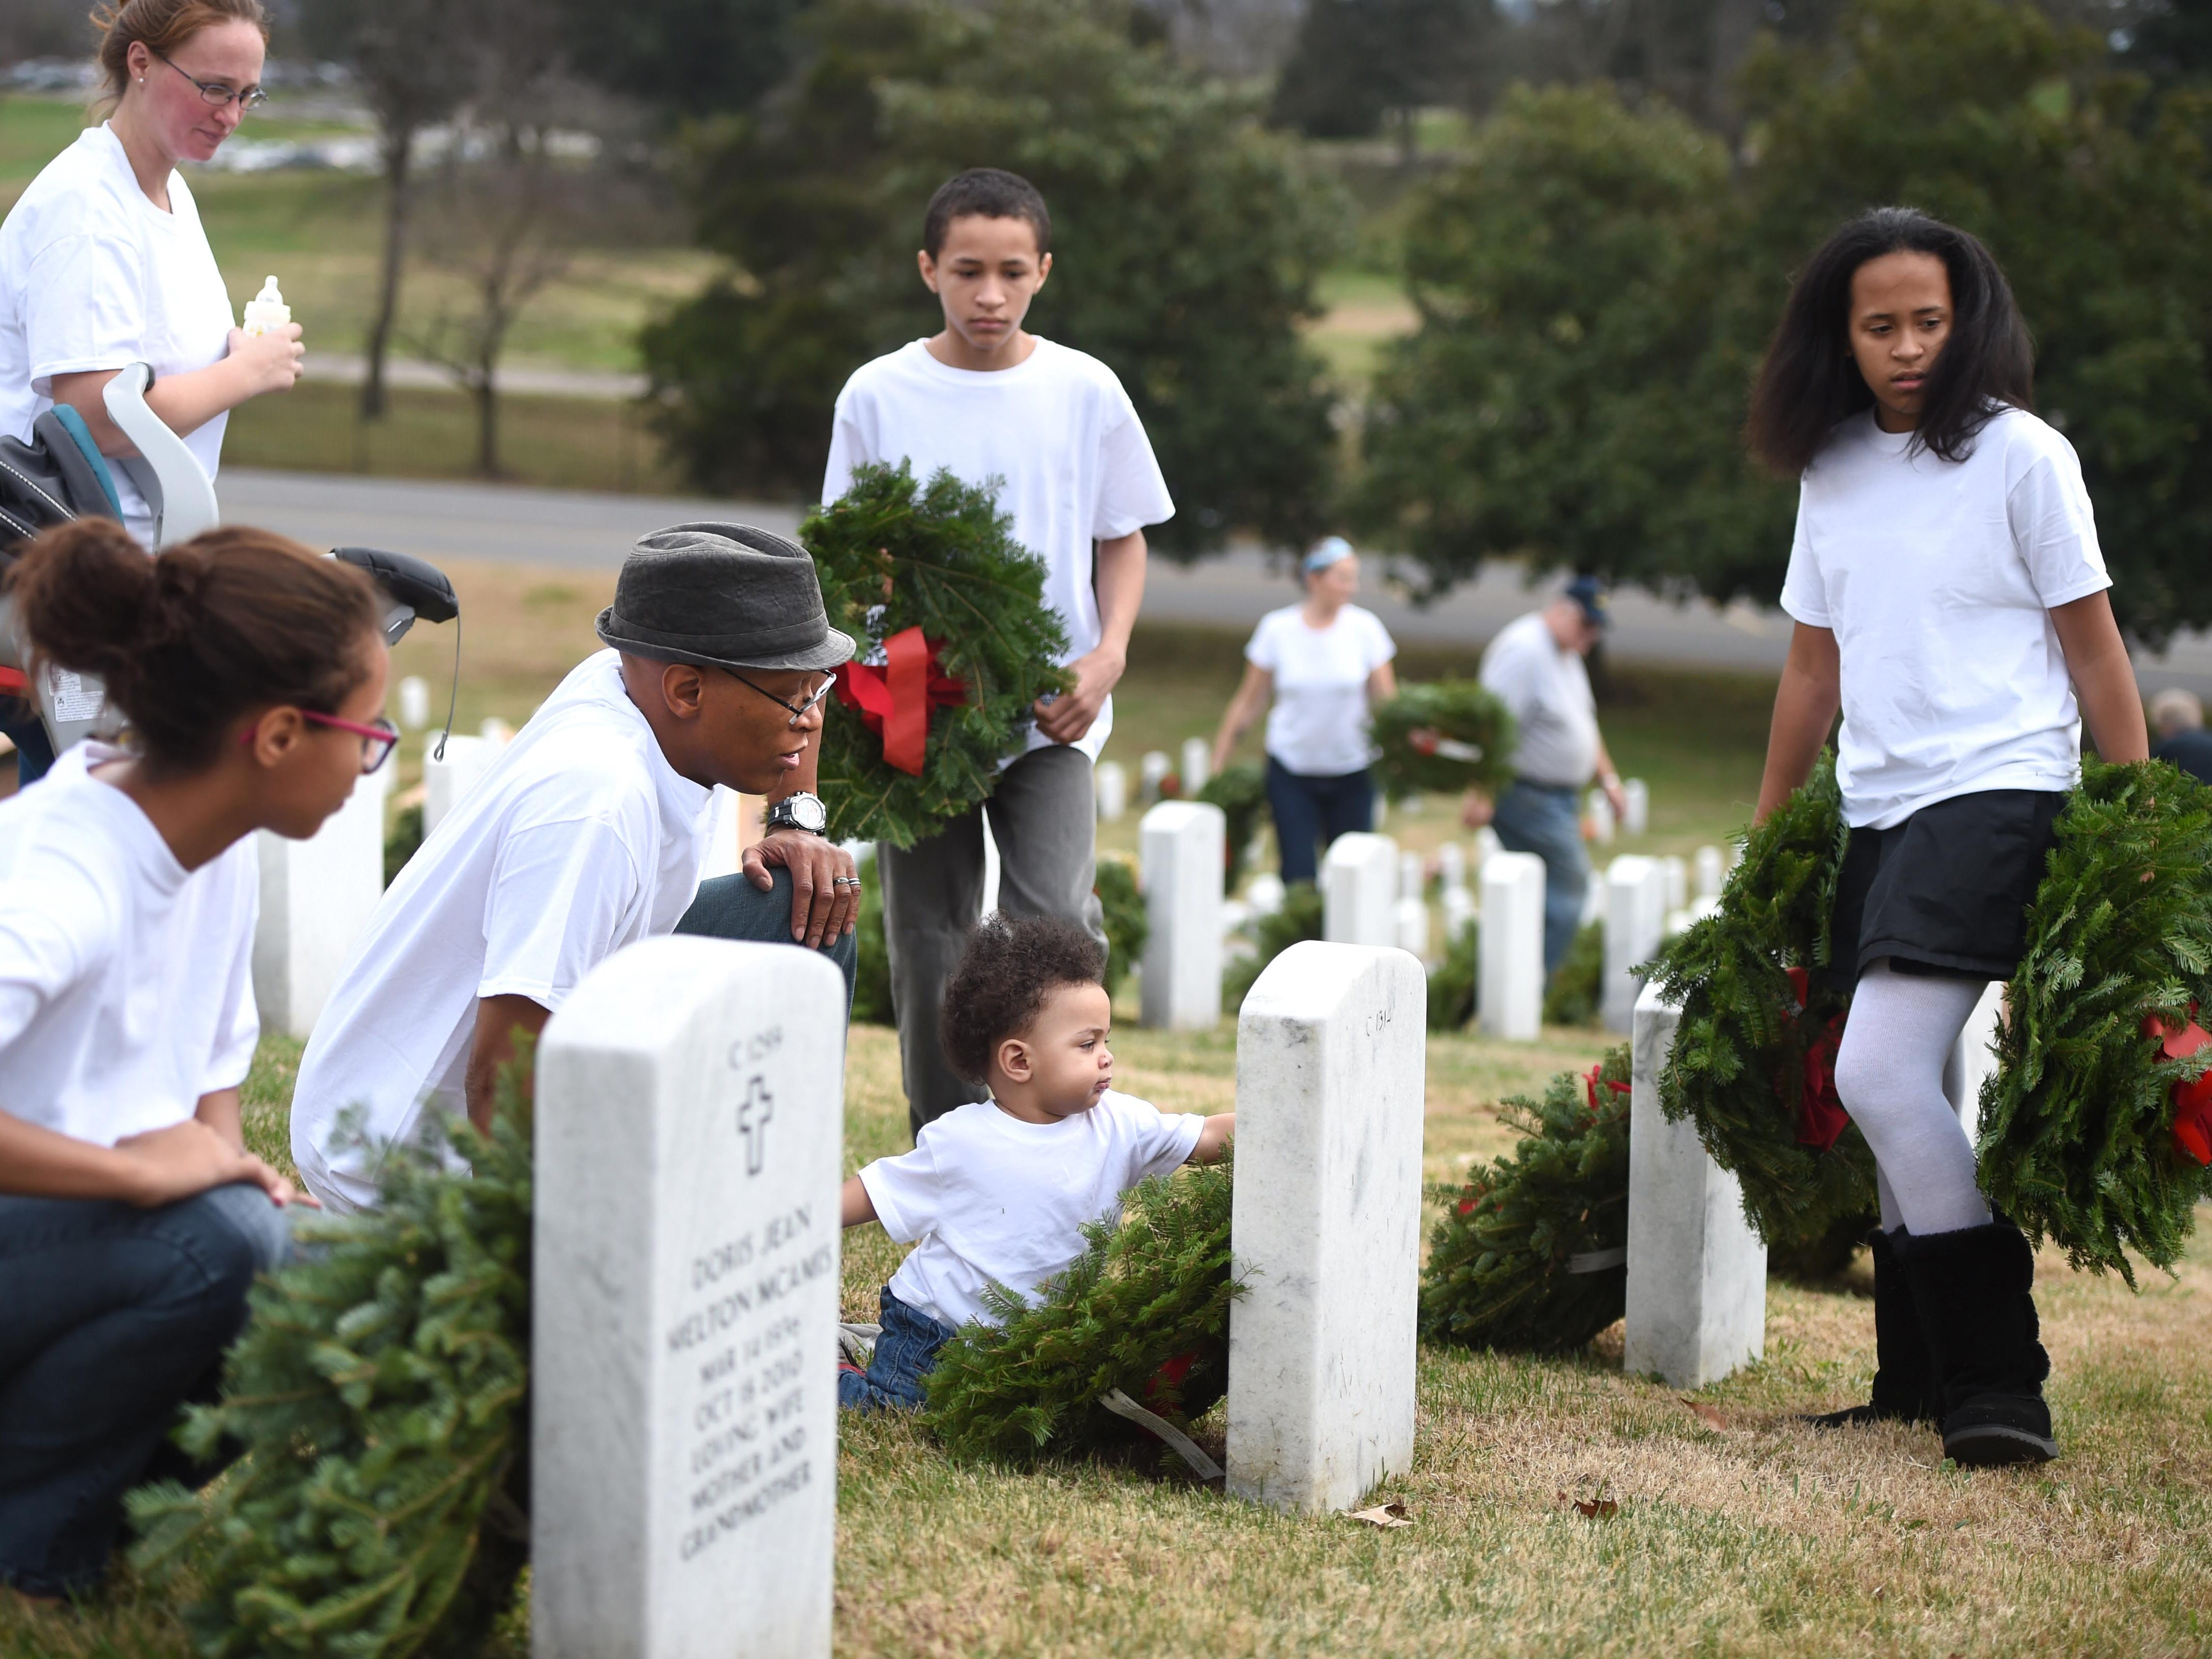 Shamare Johnson, 1, center, helps lay holiday wreaths on headstones with, from left, sister Sheyenne, mother Rebikah, father Sharles, brother Shaque, and sister Shentasia at East Tennessee State Veterans Cemetery on Saturday, Dec. 12, 2015. Sharles Johnson's grandfather served in the military and he brought his entire family out to participate in Wreaths Across America's event.